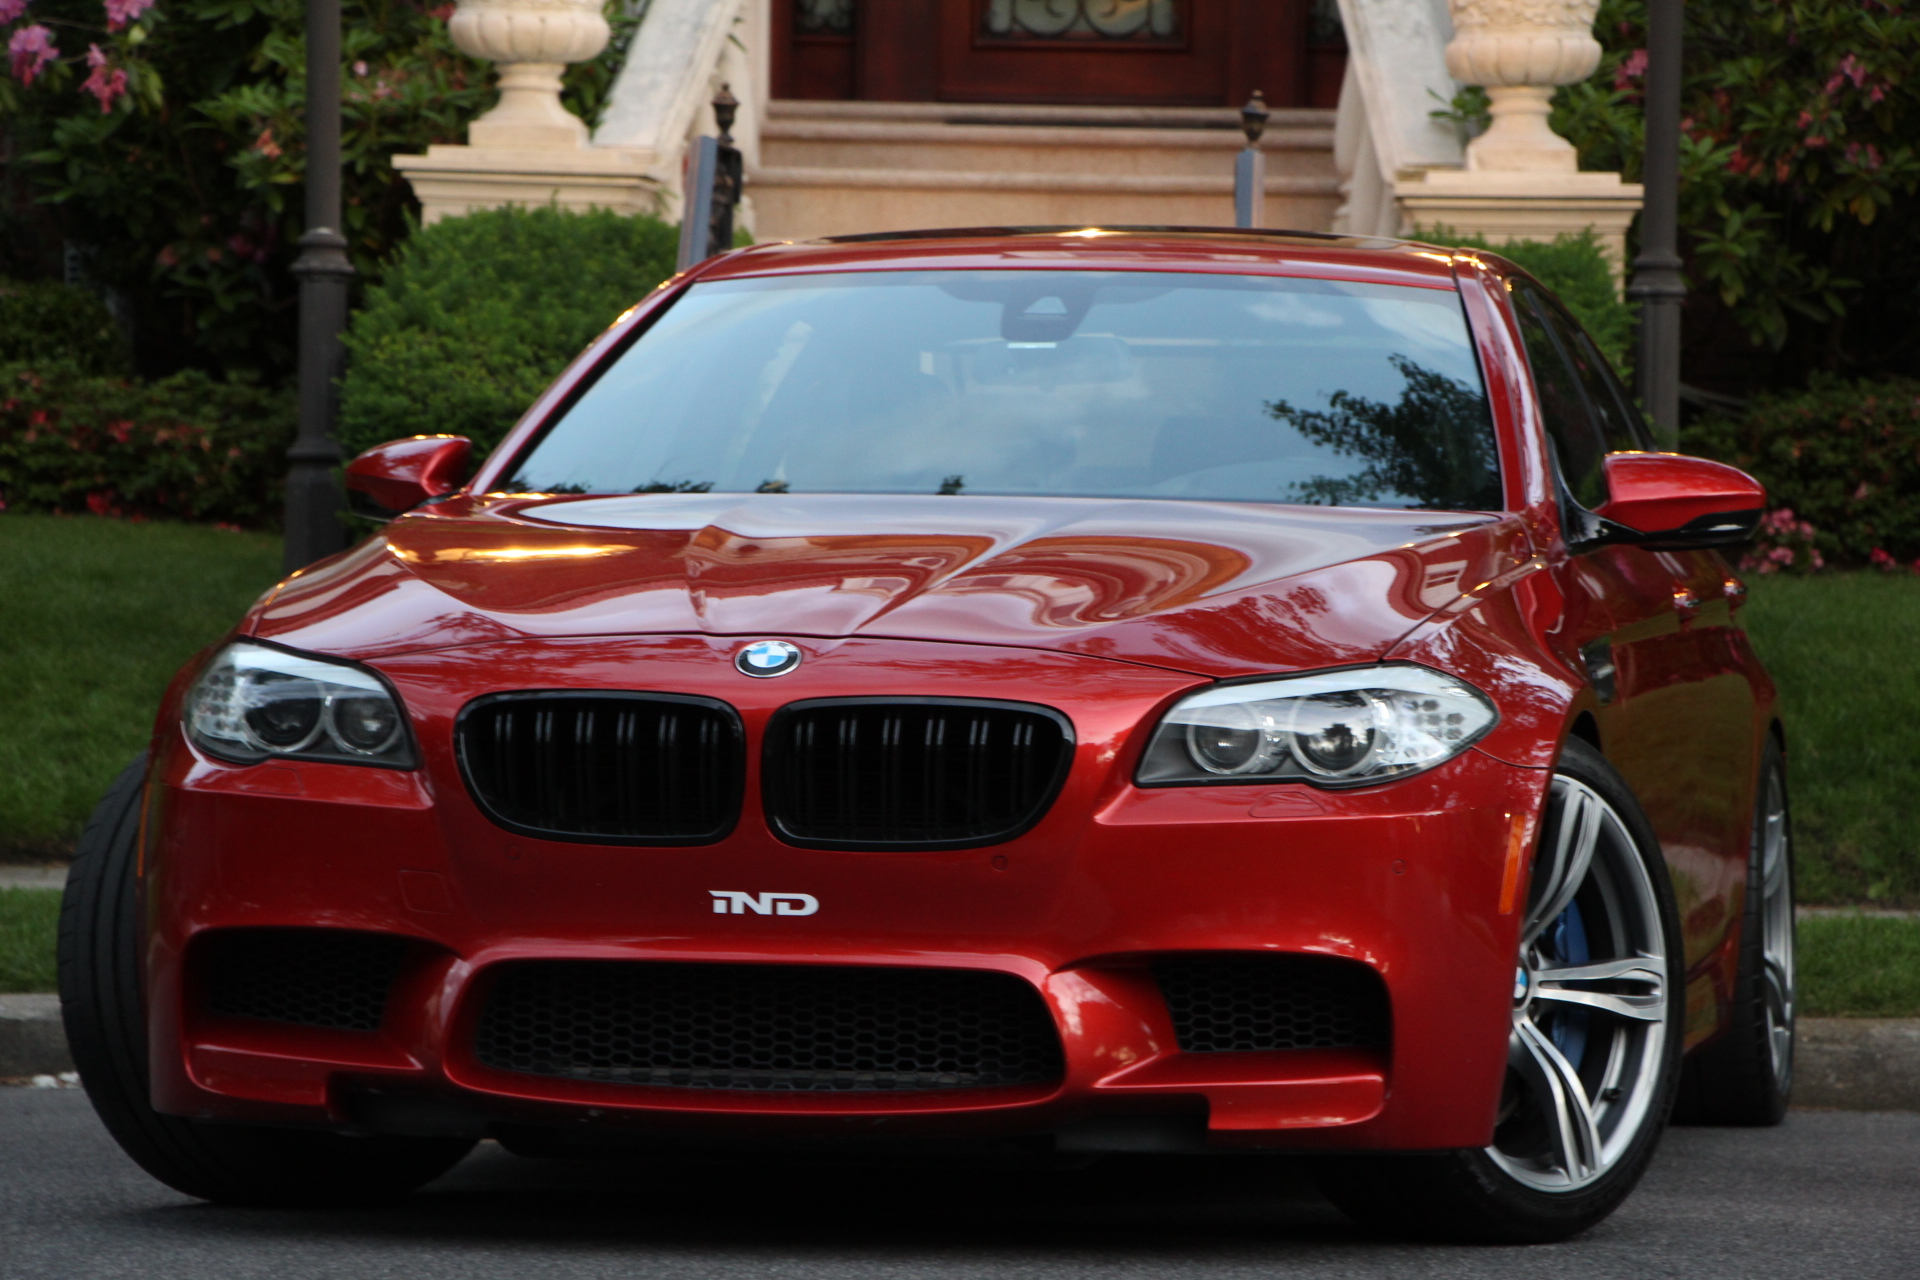 Buy Used 2013 Bmw M5 For 36 900 From Trusted Dealer In Brooklyn Ny